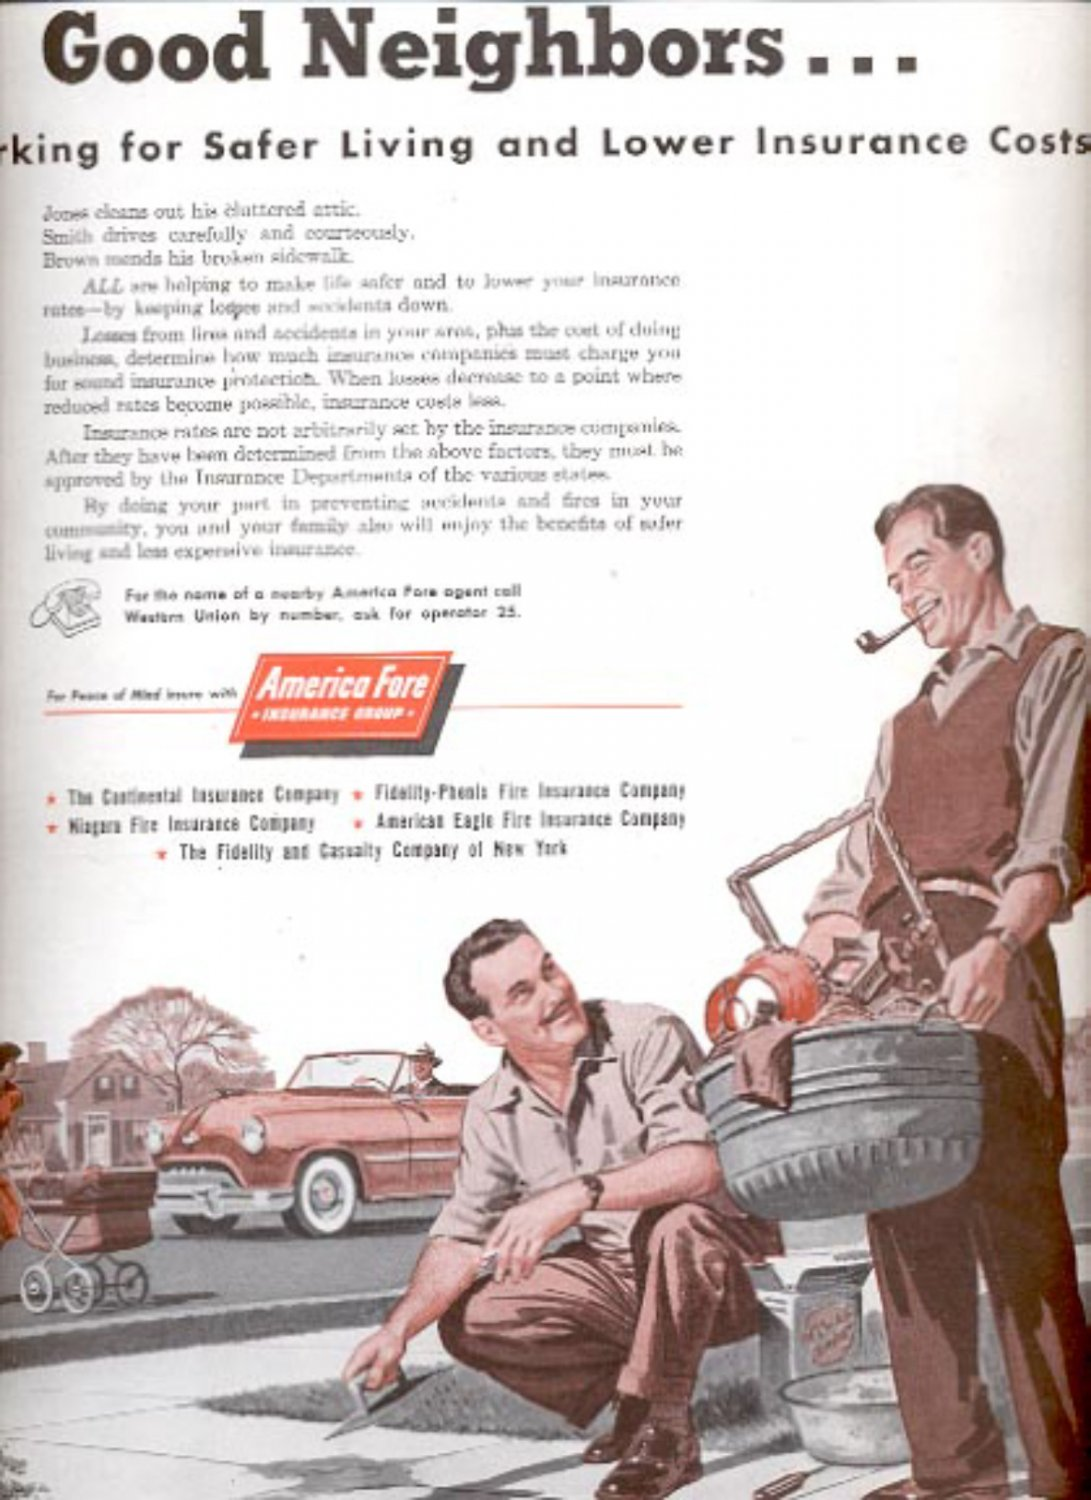 1954  America Fore Insurance Group  magazine   ad (# 5178)